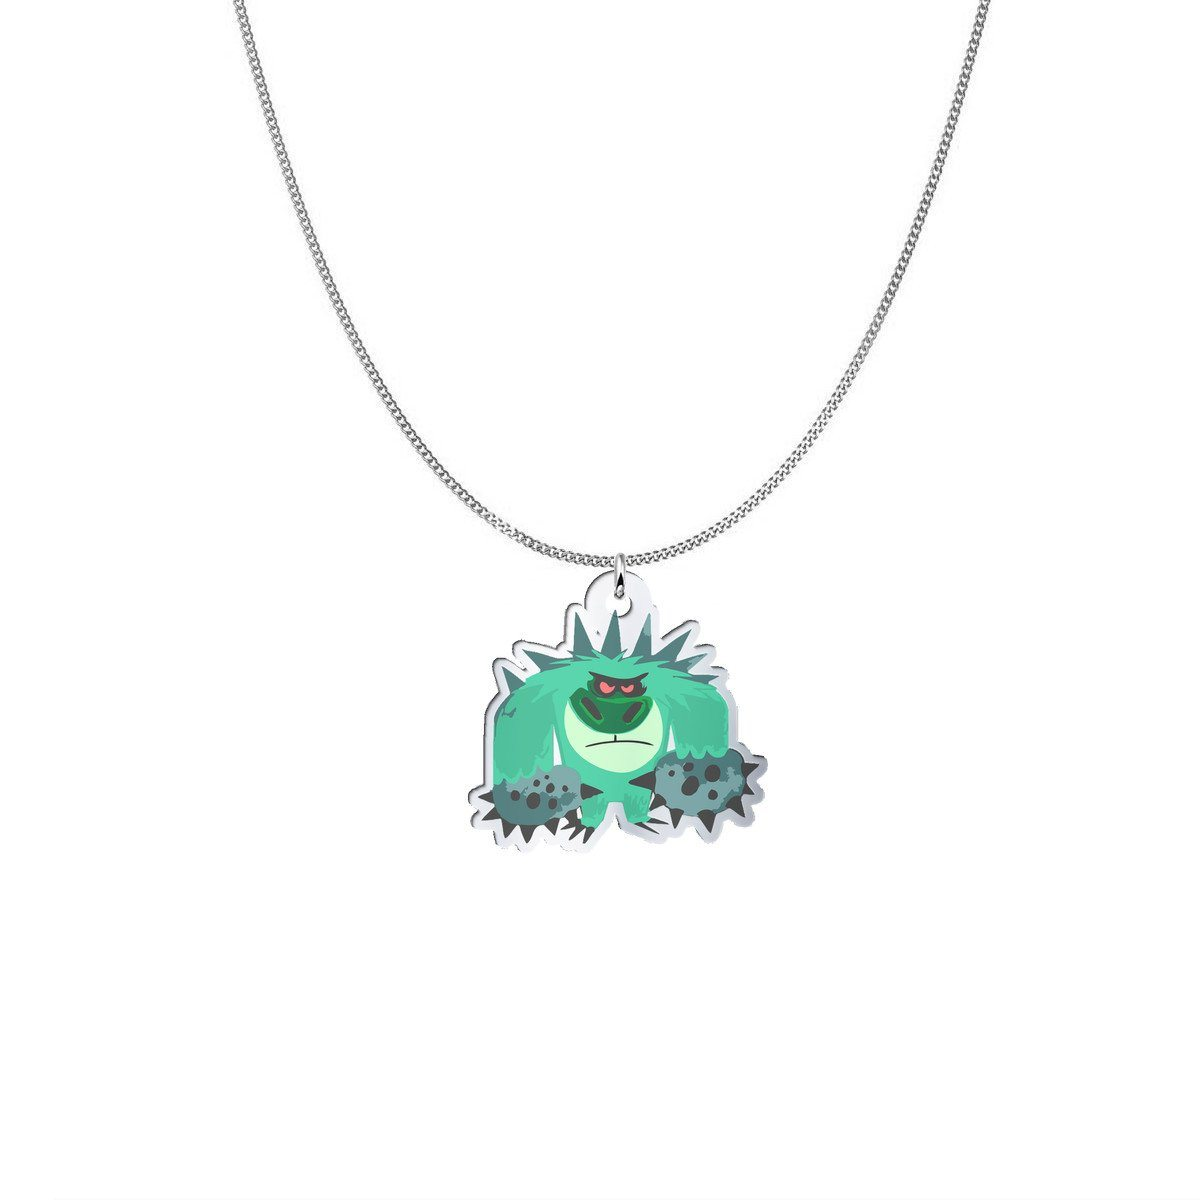 Pendant - Mr. T The Trigeminal Neuralgia Monster Silver Necklace